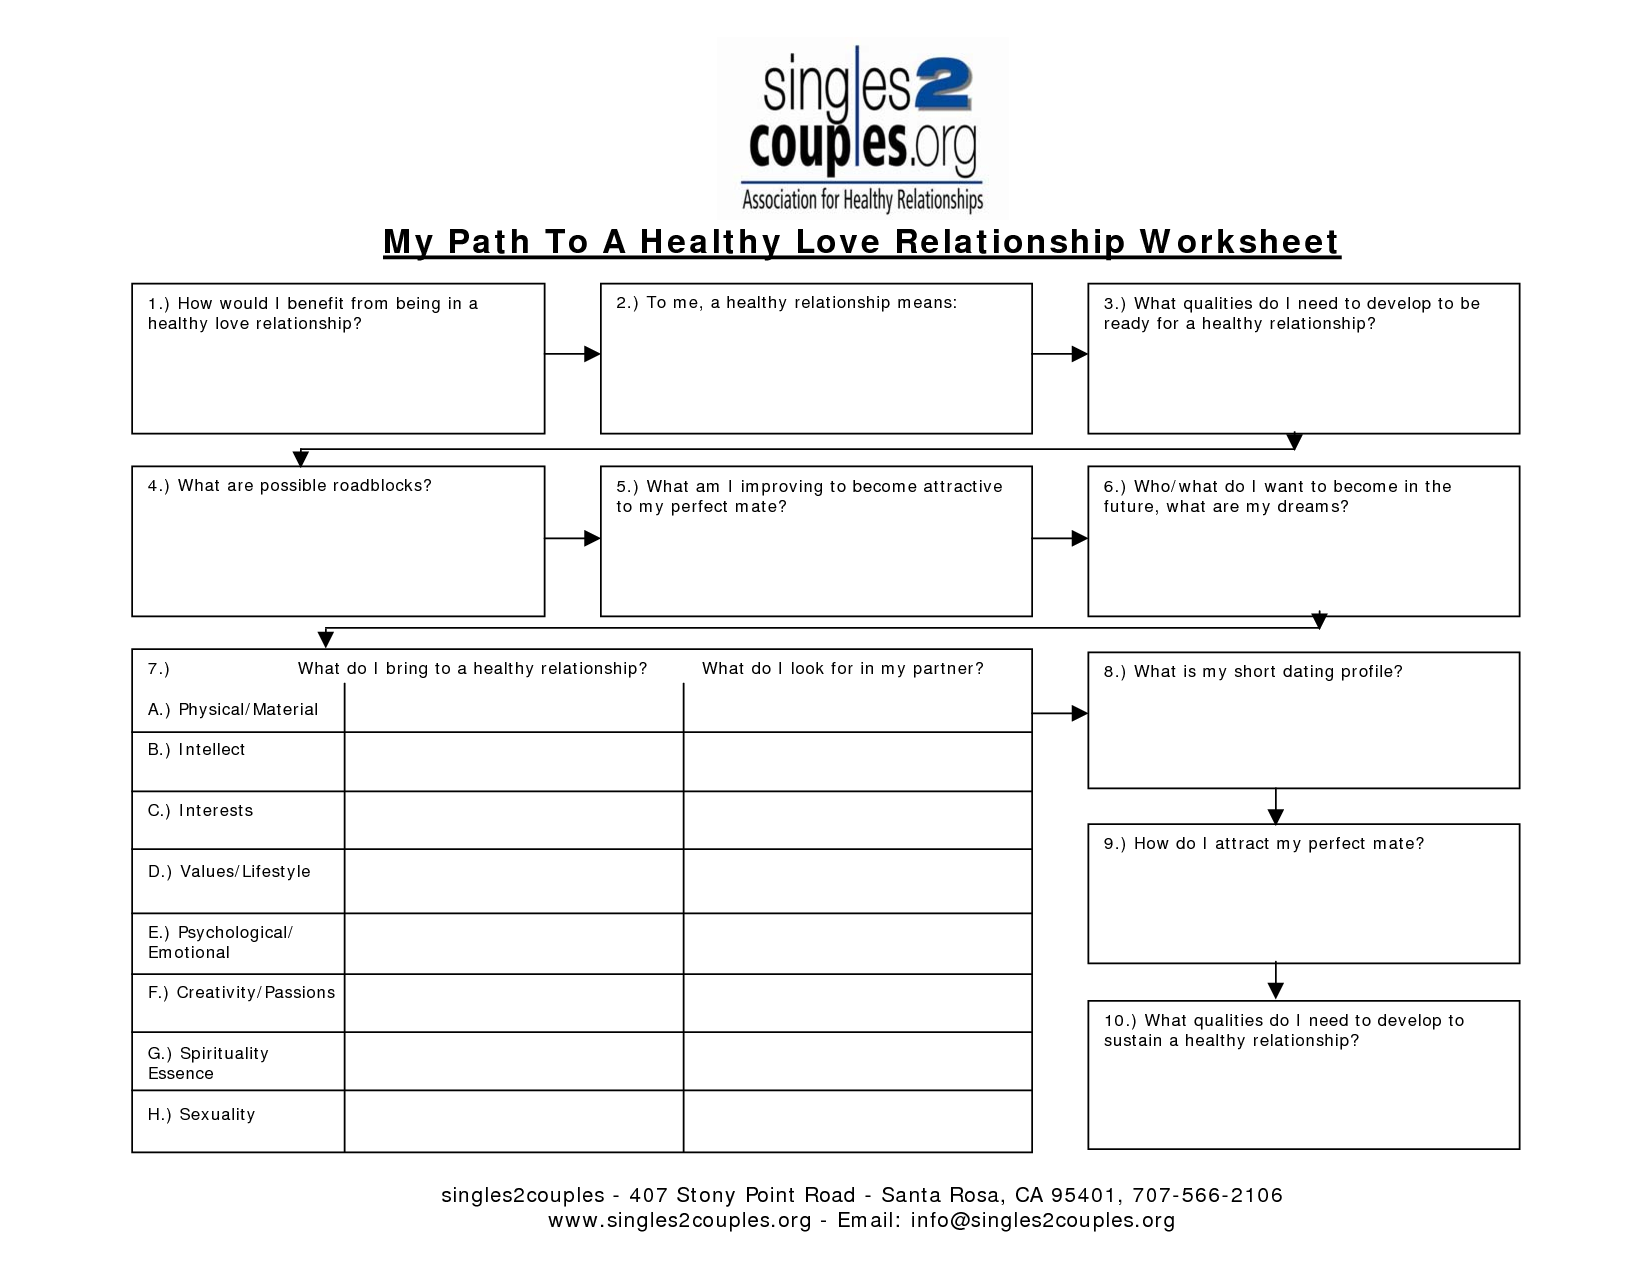 Worksheets Free Marriage Counseling Worksheets stopped having sex in your relationship worksheets relationships healthy worksheets